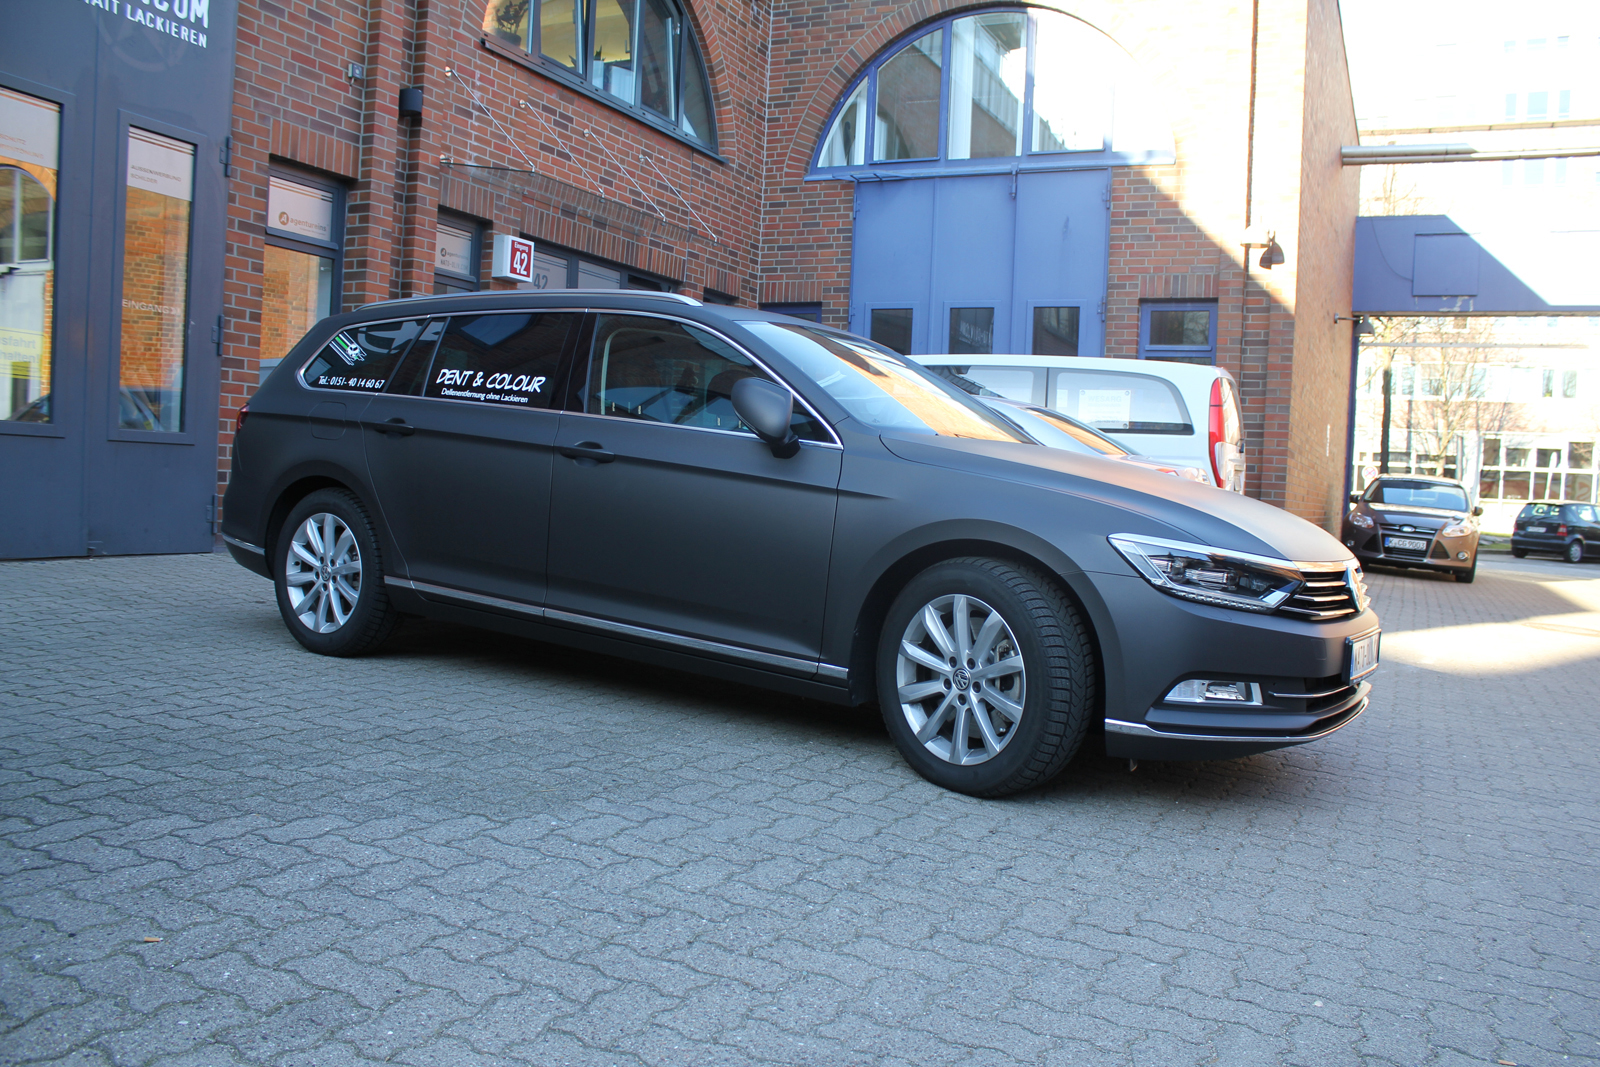 VW Passat Car Wrapping mit Folie in schwarz-braun matt metallic